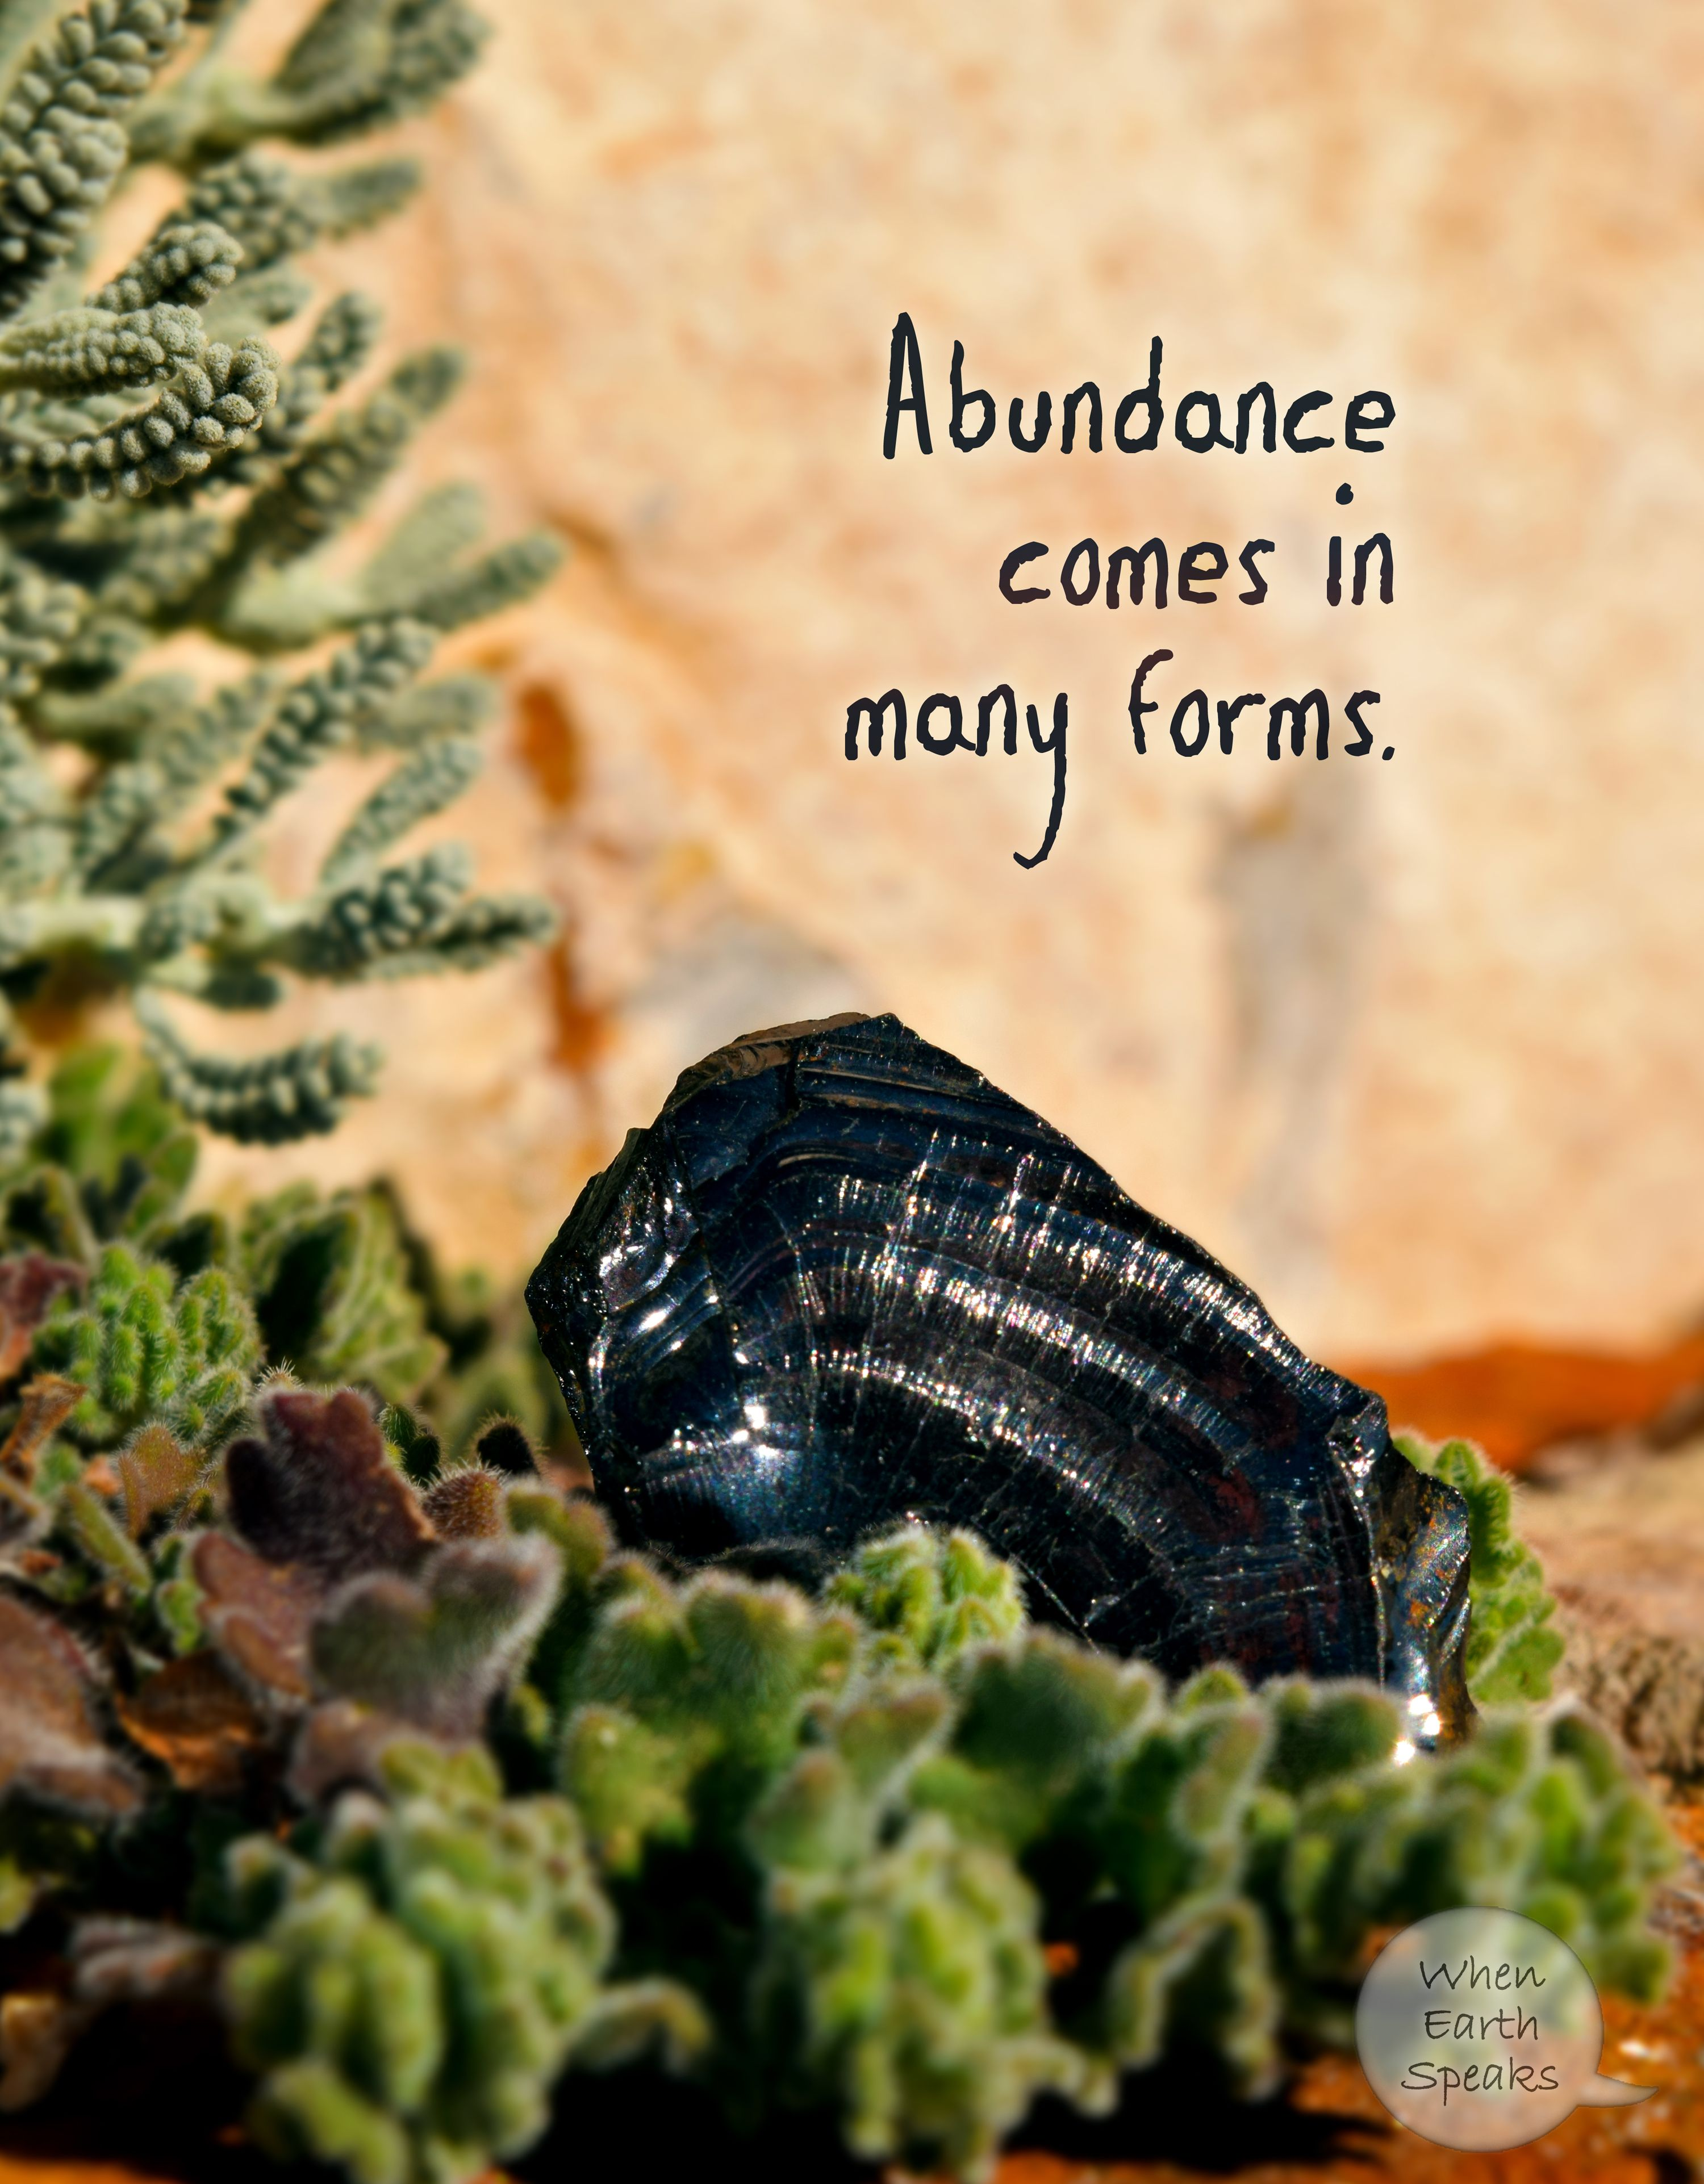 Inspirational abundance picture quote by When Earth Speaks.